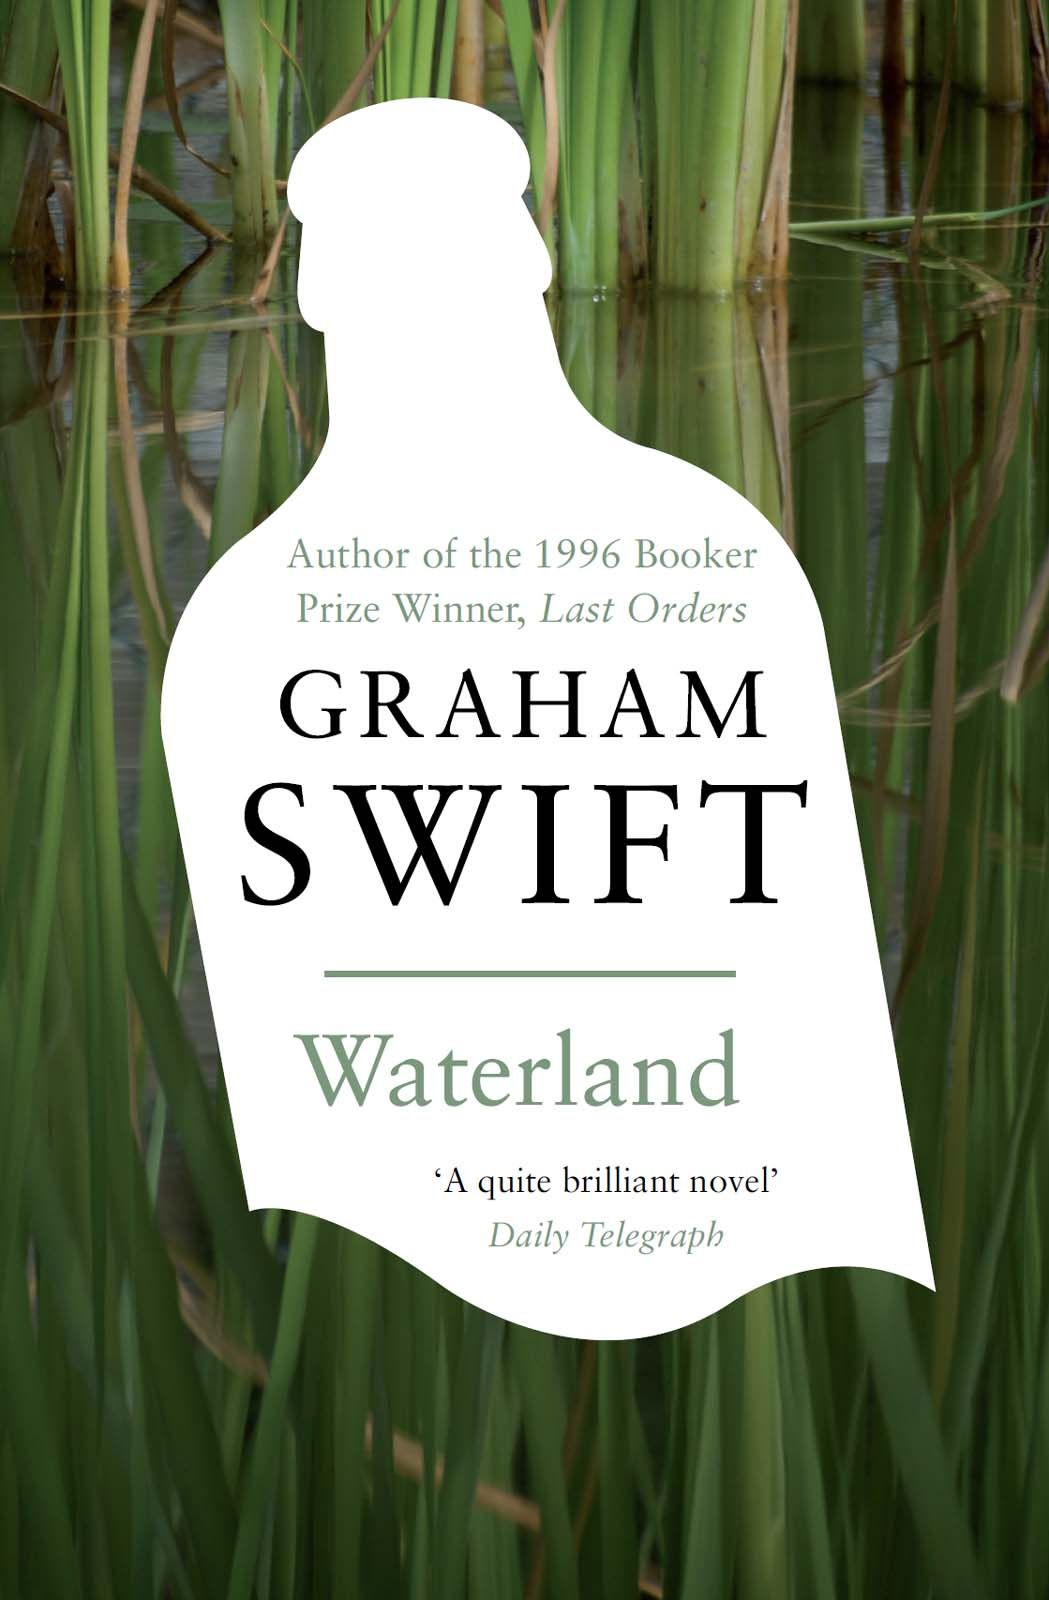 Waterland Graham Swift British novels, Waterland, Novels